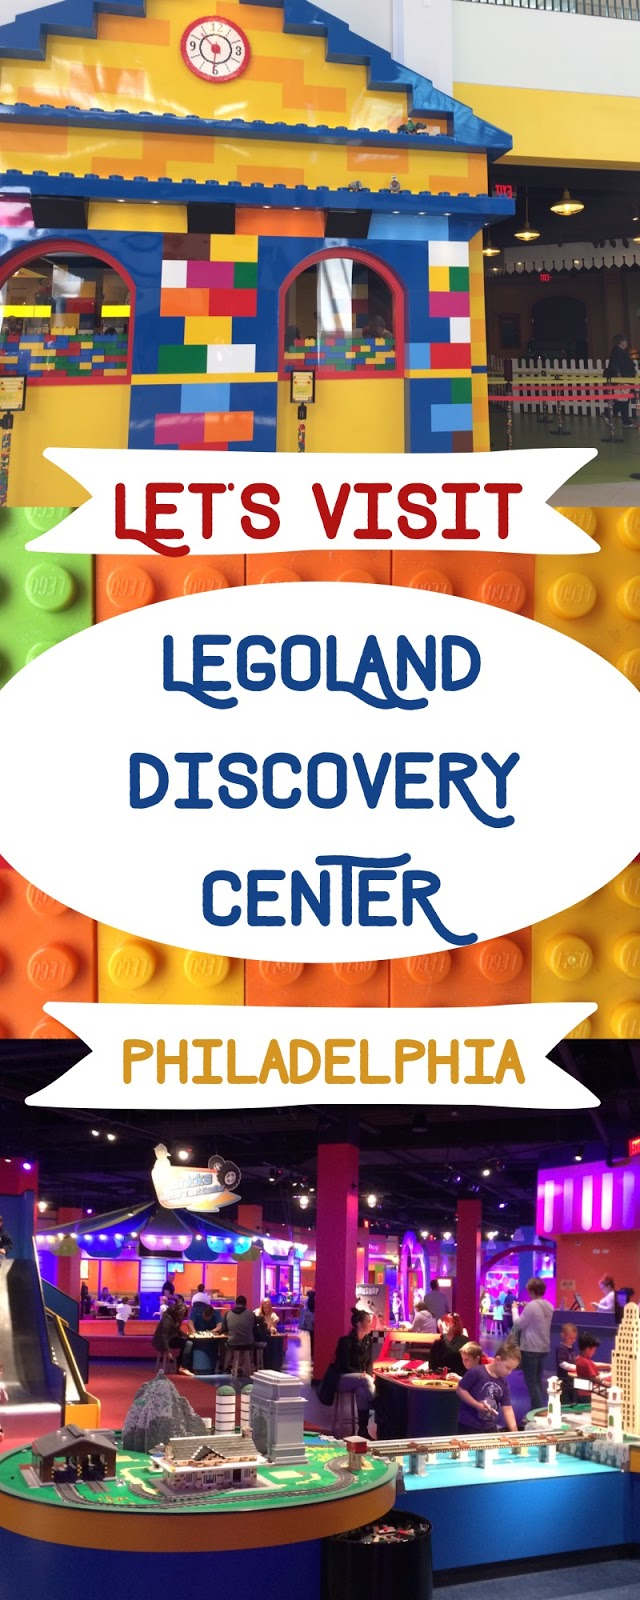 Legoland discovery center philadelphia is a lego lover s dream come true come read my review of our fun afternoon at the ultimate indoor lego playground